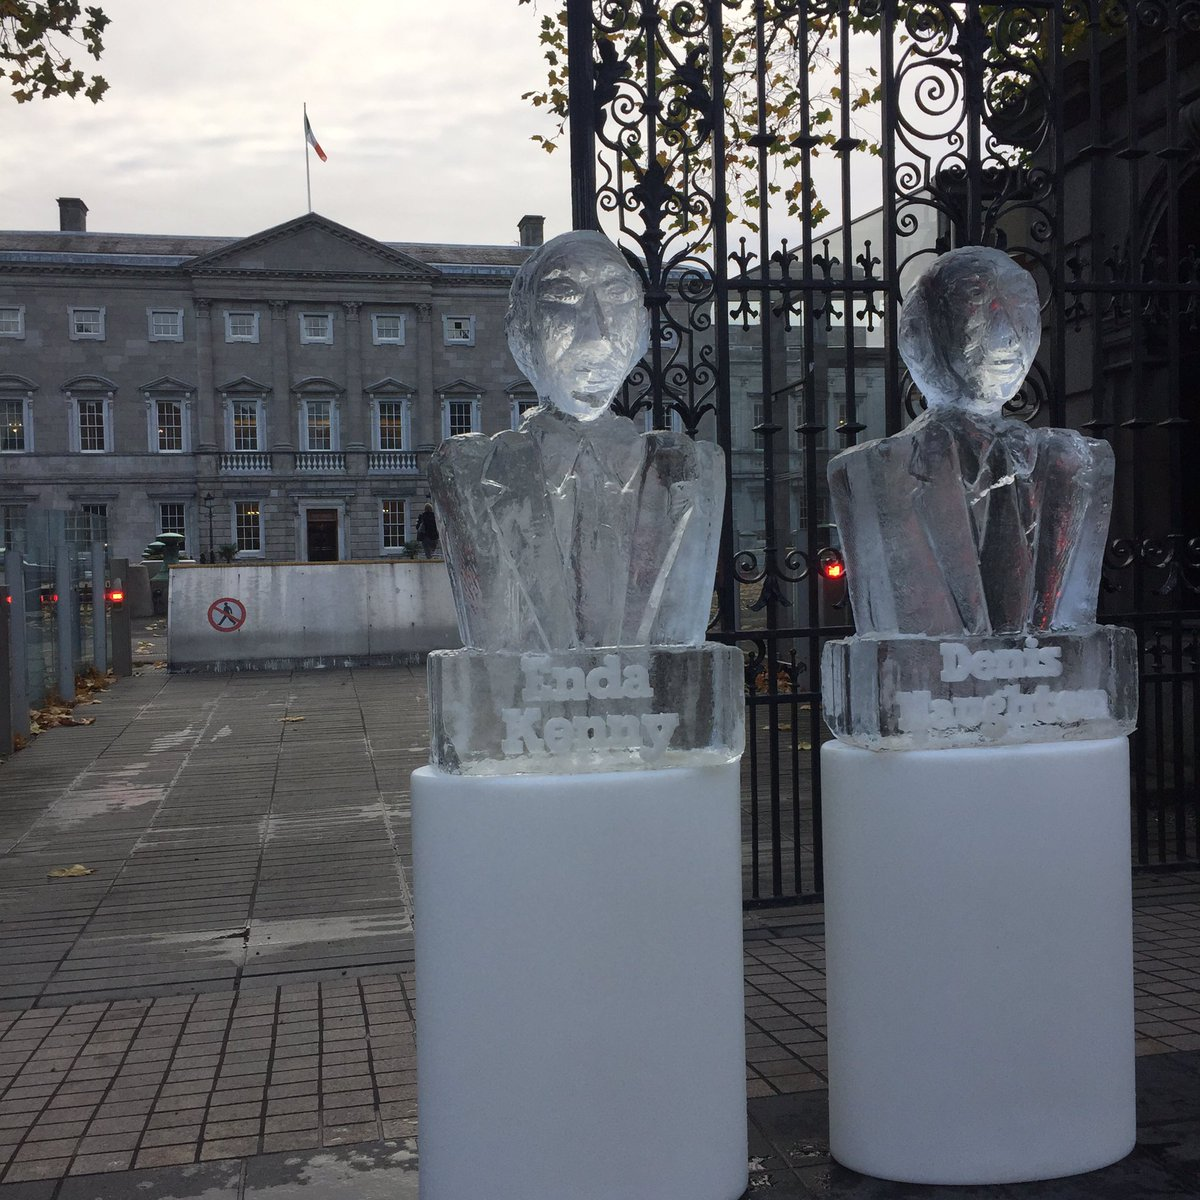 Environmental action group stage climate-change performance art - Melting ice busts of Taoiseach Enda Kenny and Minister Denis Naughten - for meet you TD today